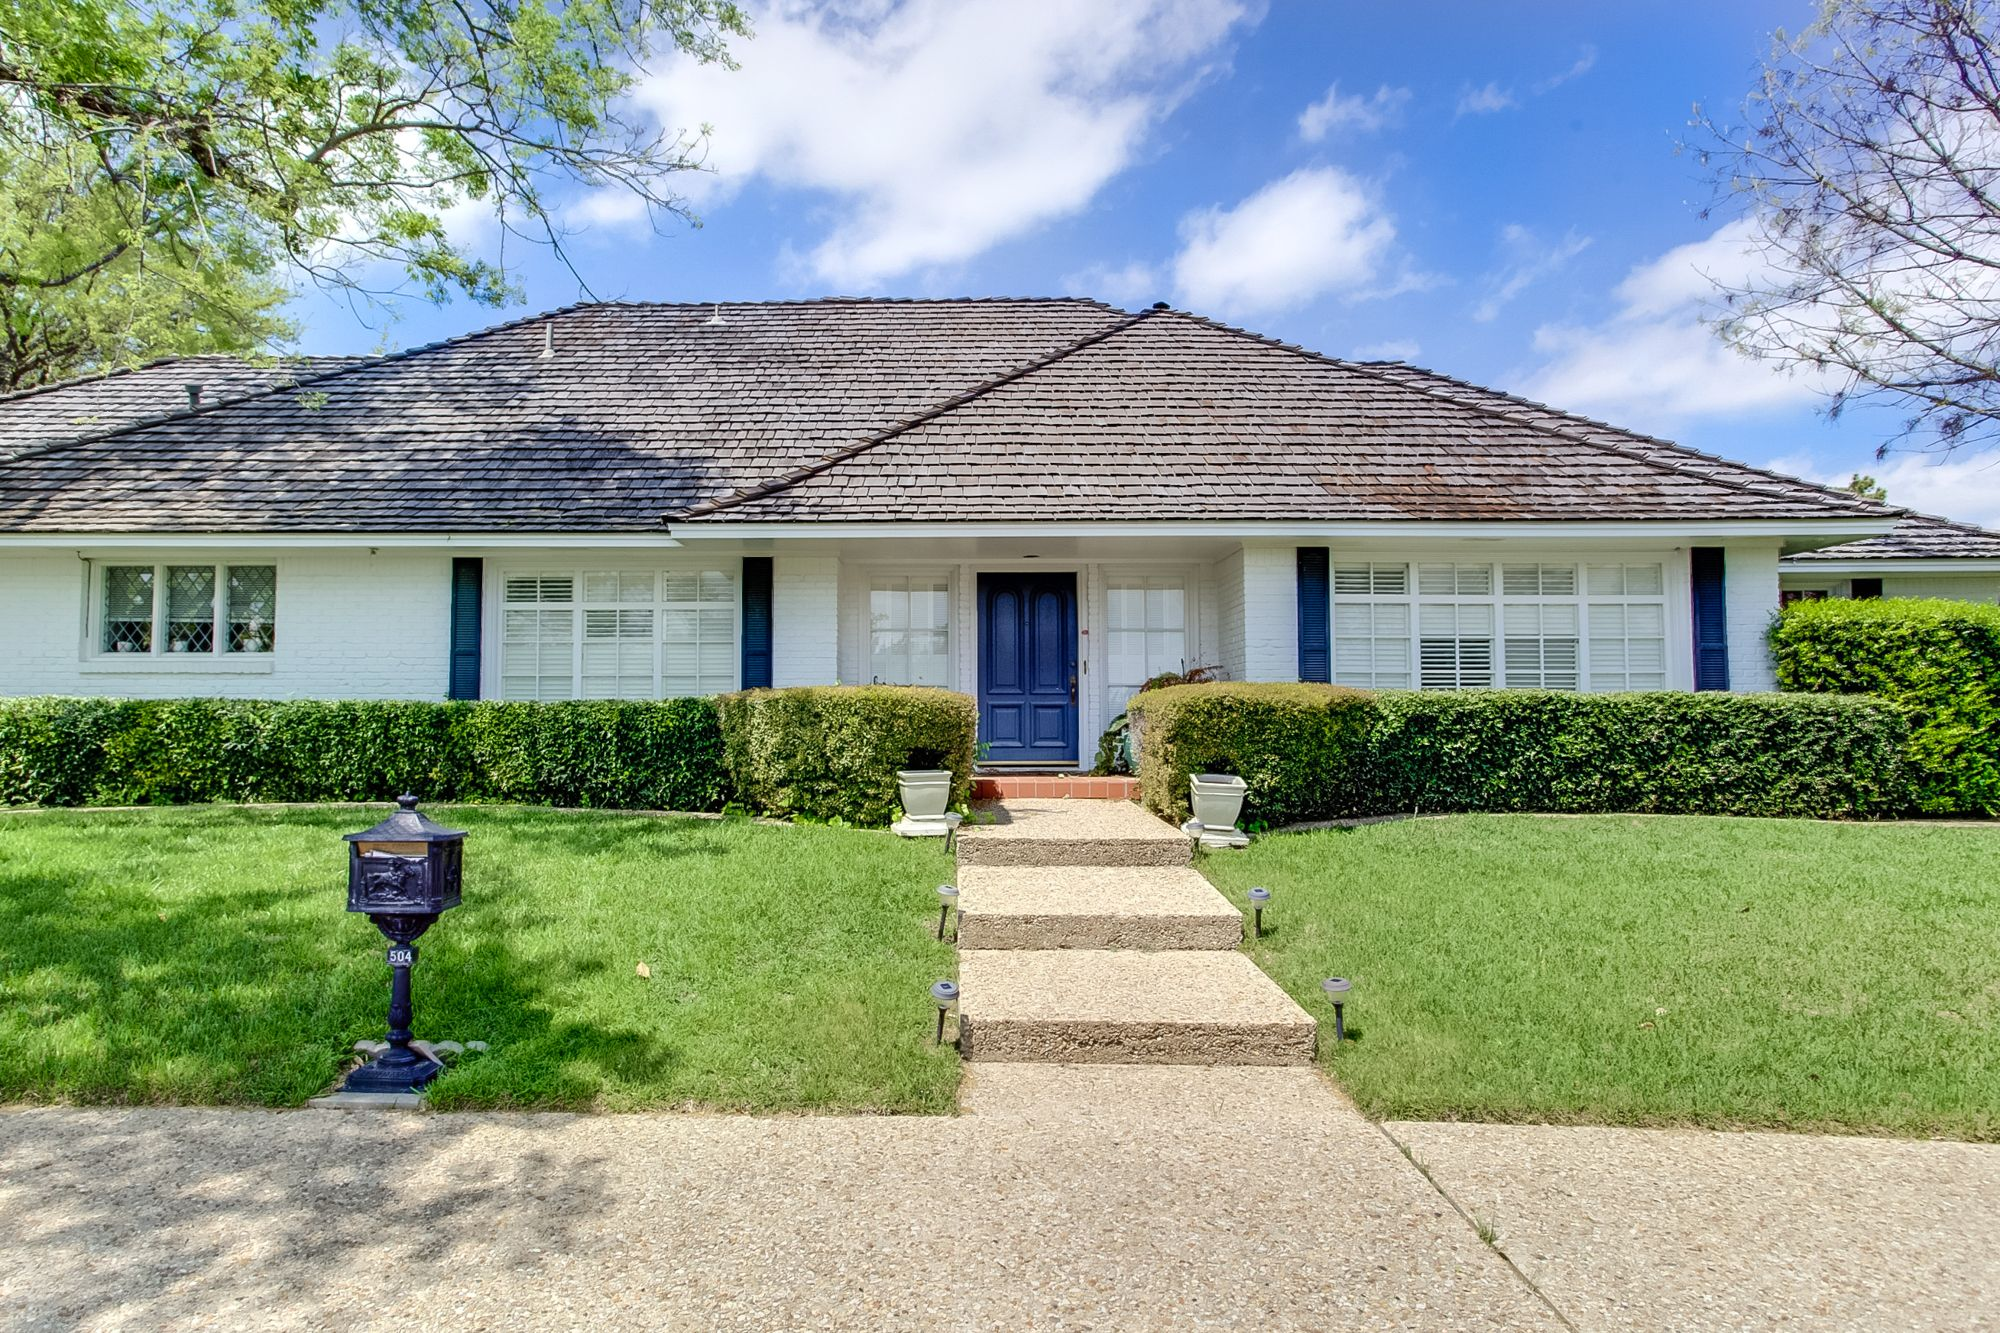 Lovely 3 bedroom home in westover hills with a pool and